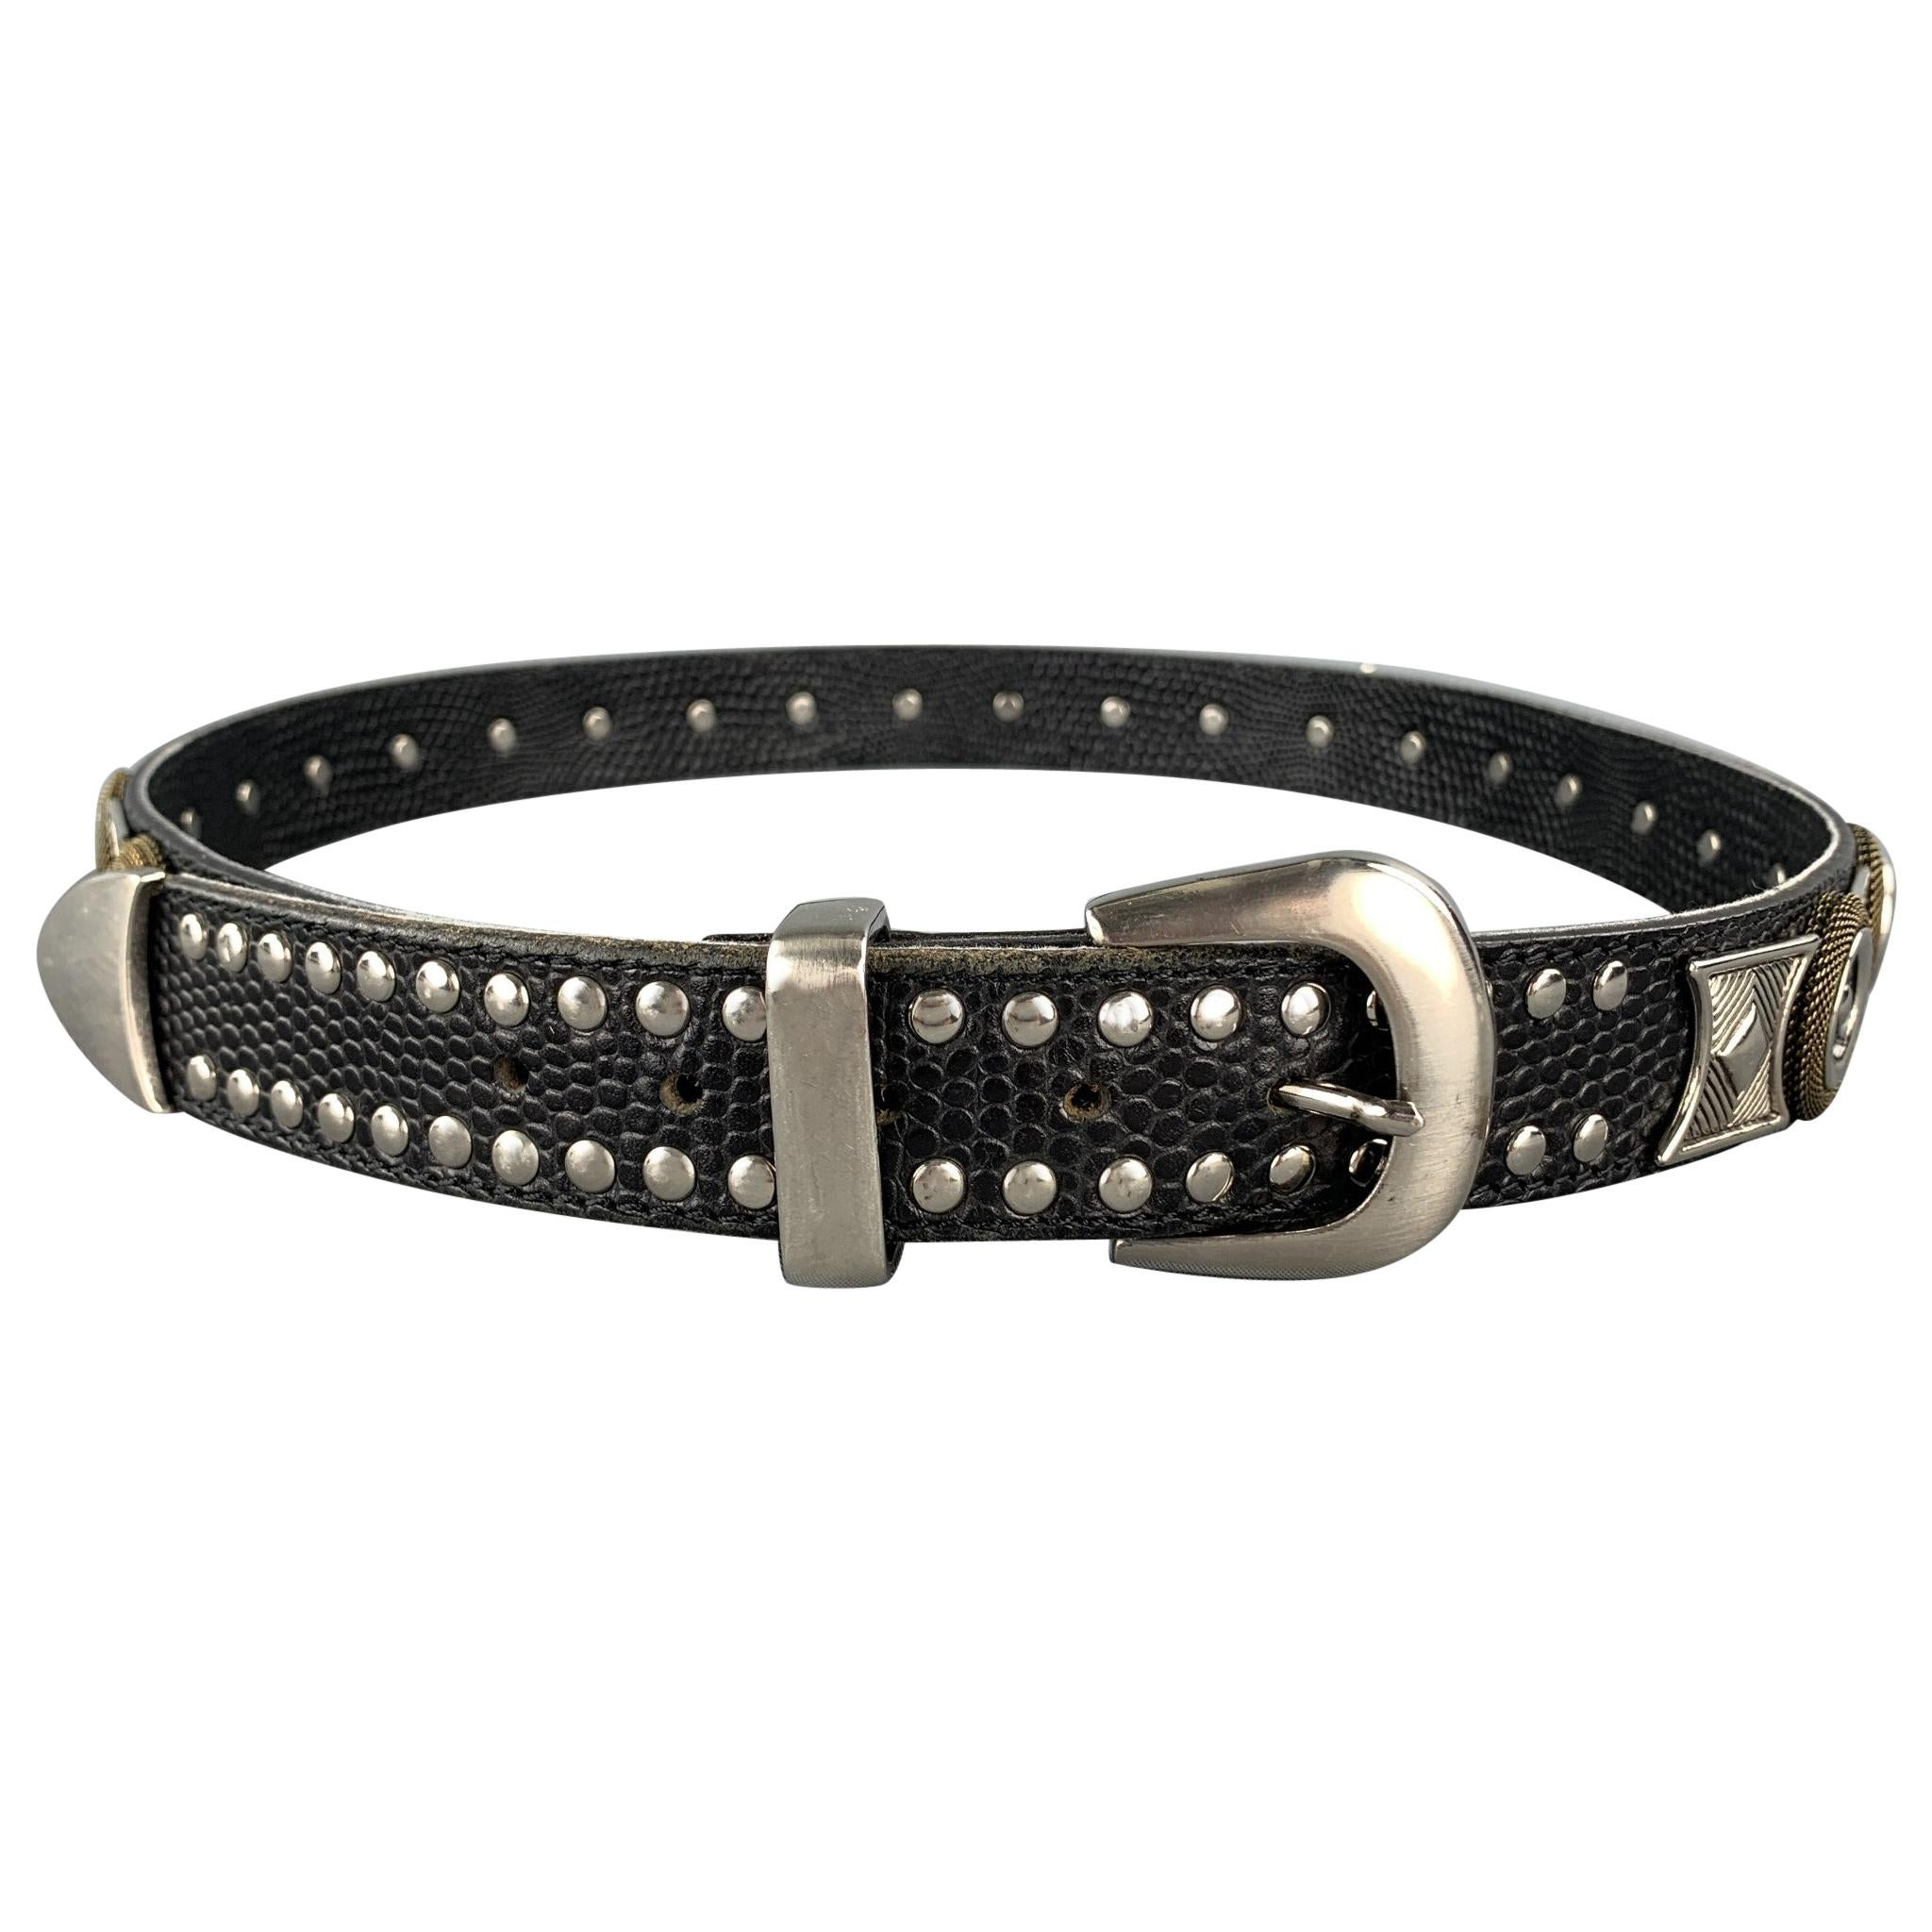 NANNI Size 36 Black & Silver Studded Leather Metal Belt